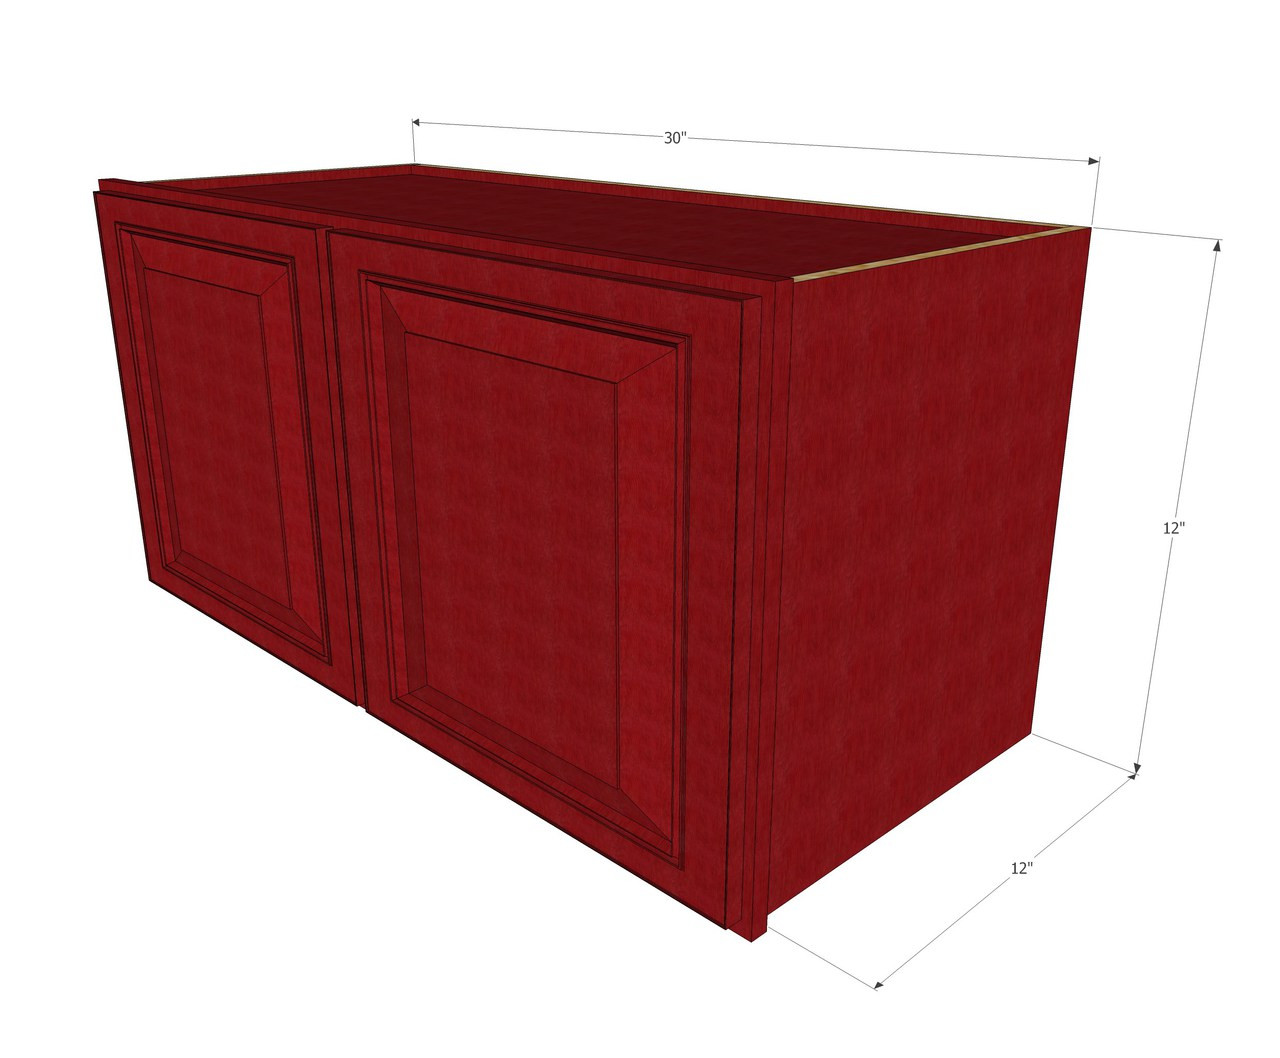 Grand Reserve Cherry Horizontal Overhead Wall Cabinet 30 Inch Wide X 12 Inch High Kitchen